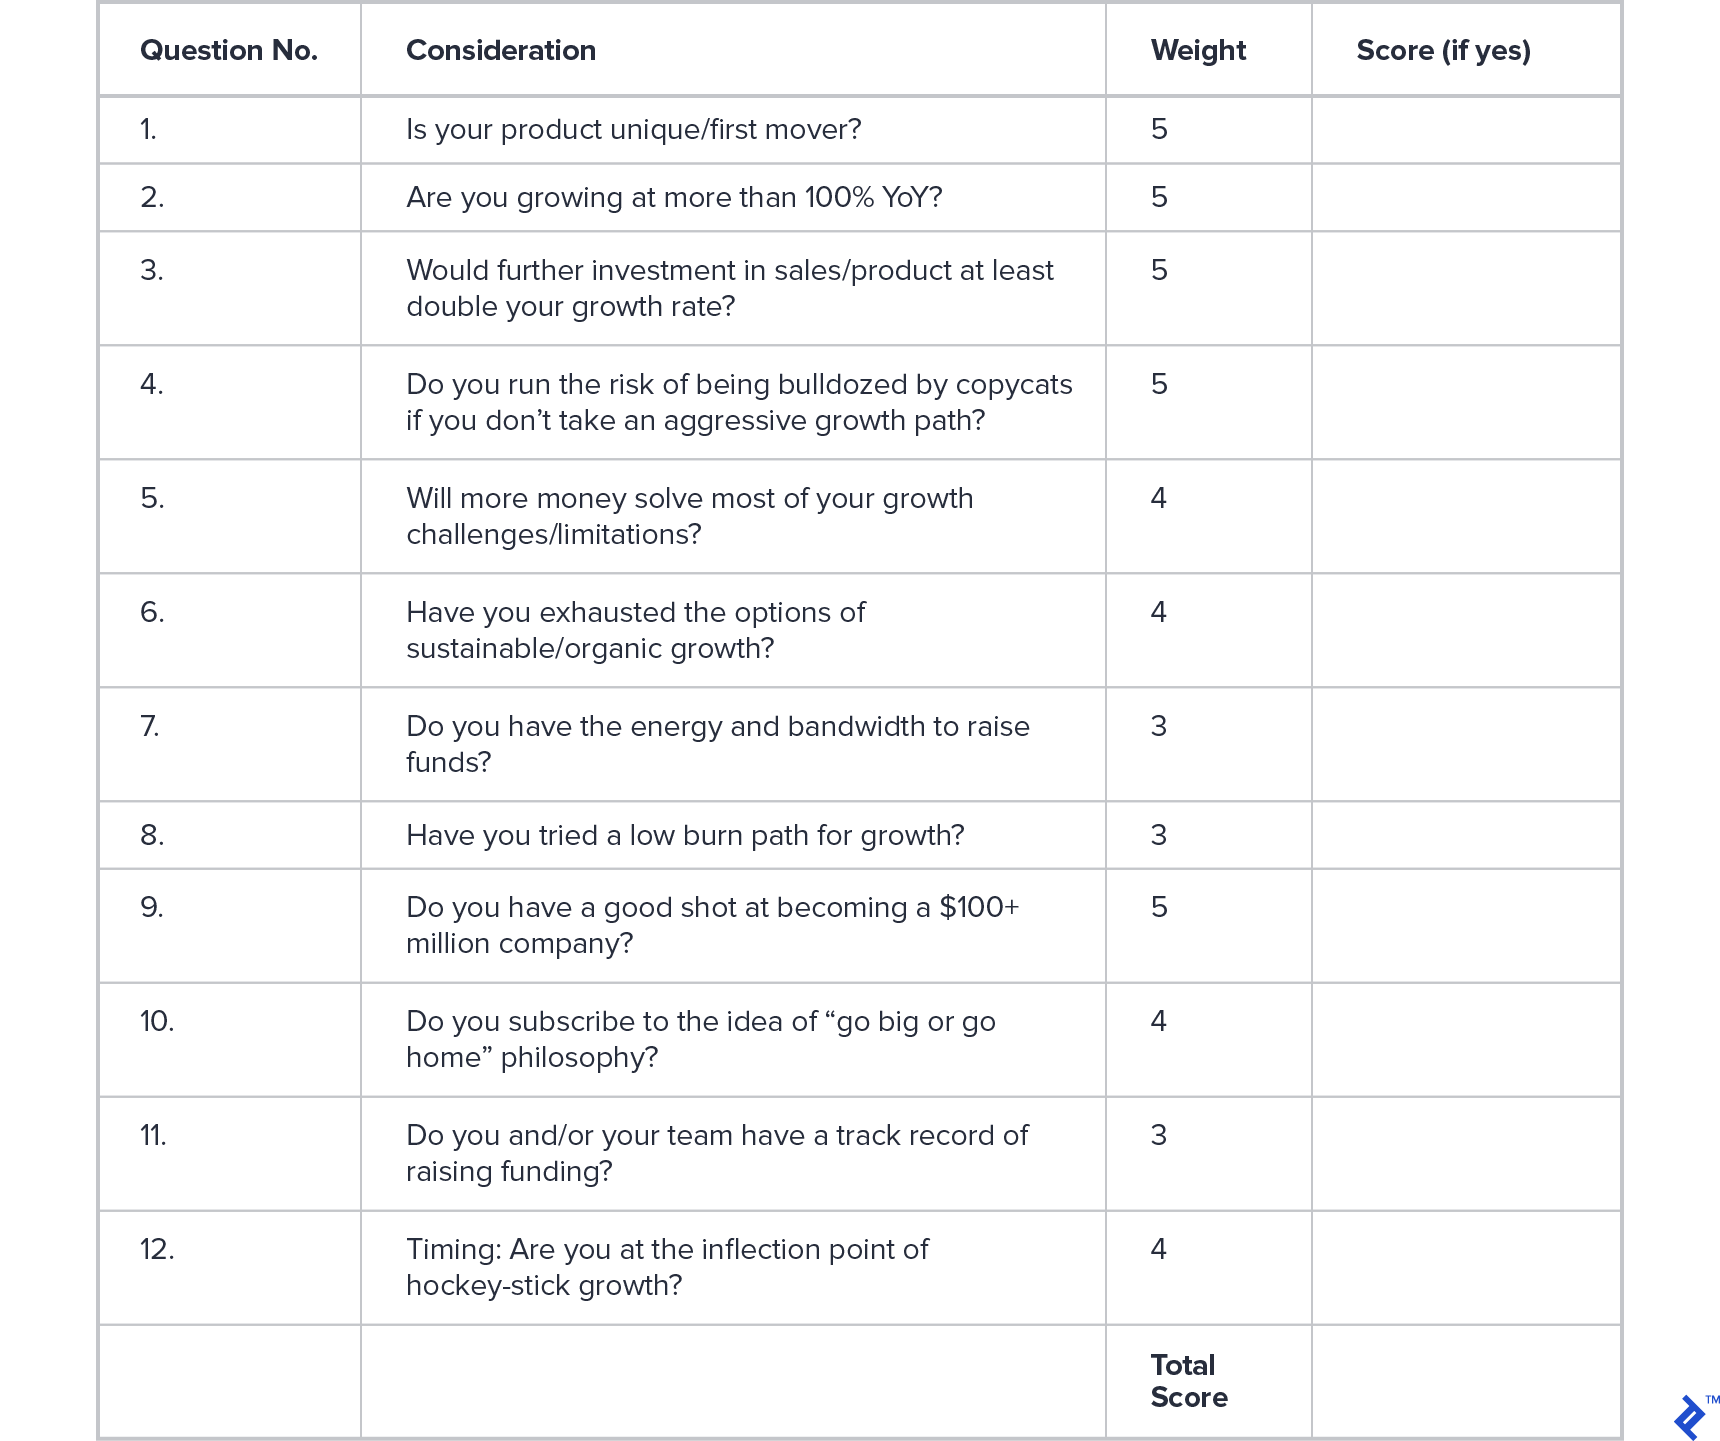 Scorecard for assessing whether to bootstrap or raise equity financing